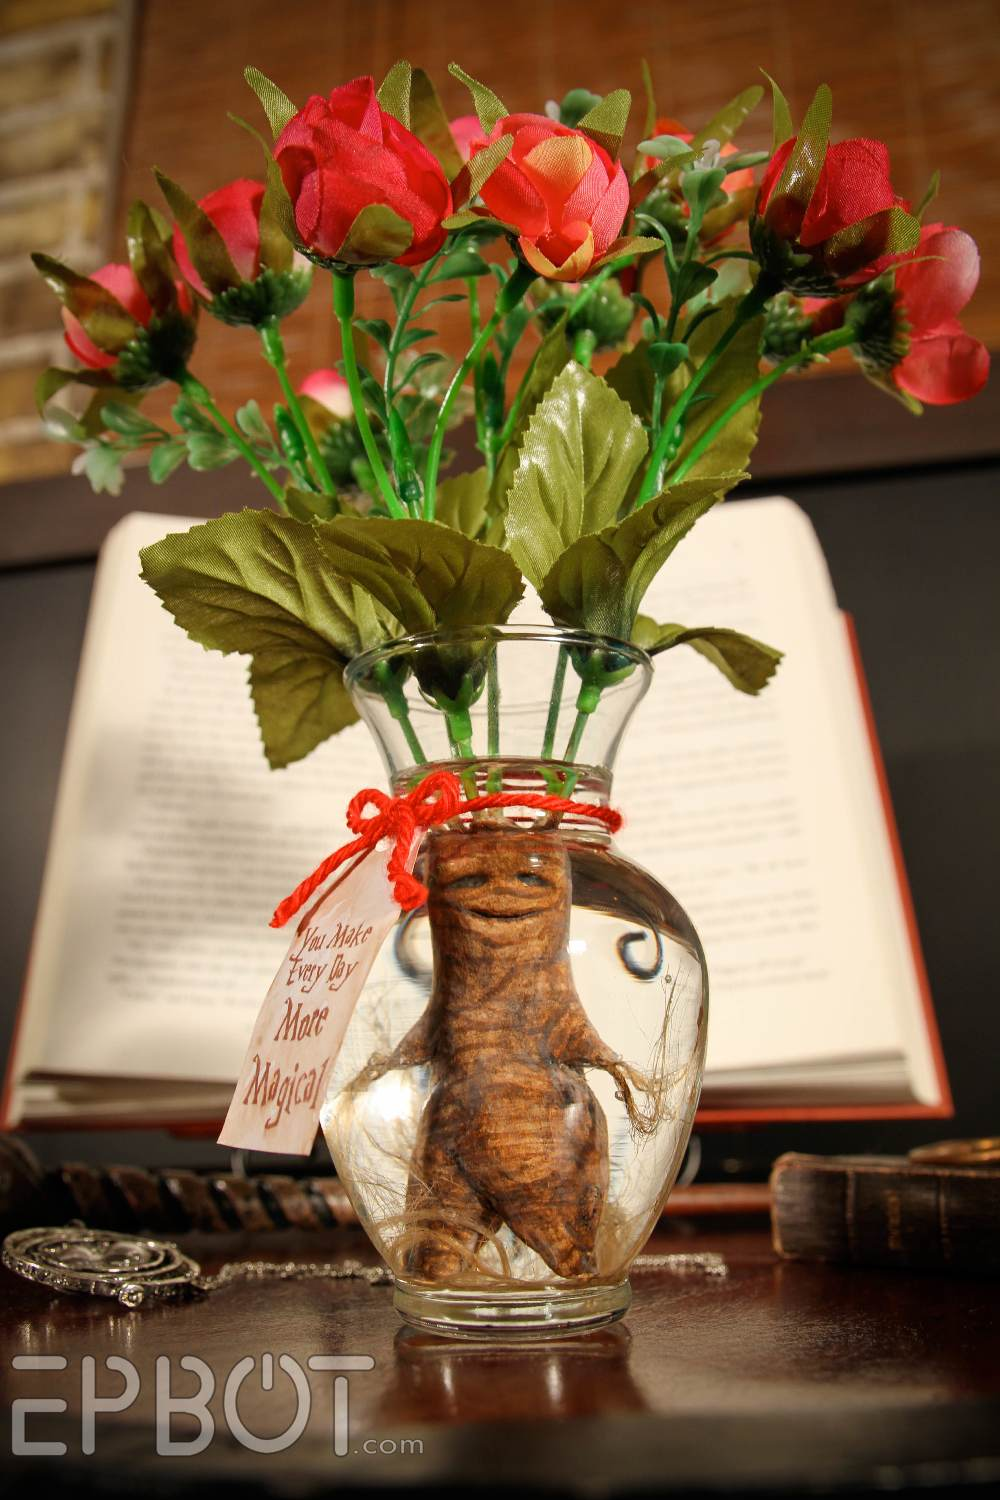 Diy A Harry Potter Inspired Mandrake Root Valentine Bouquet